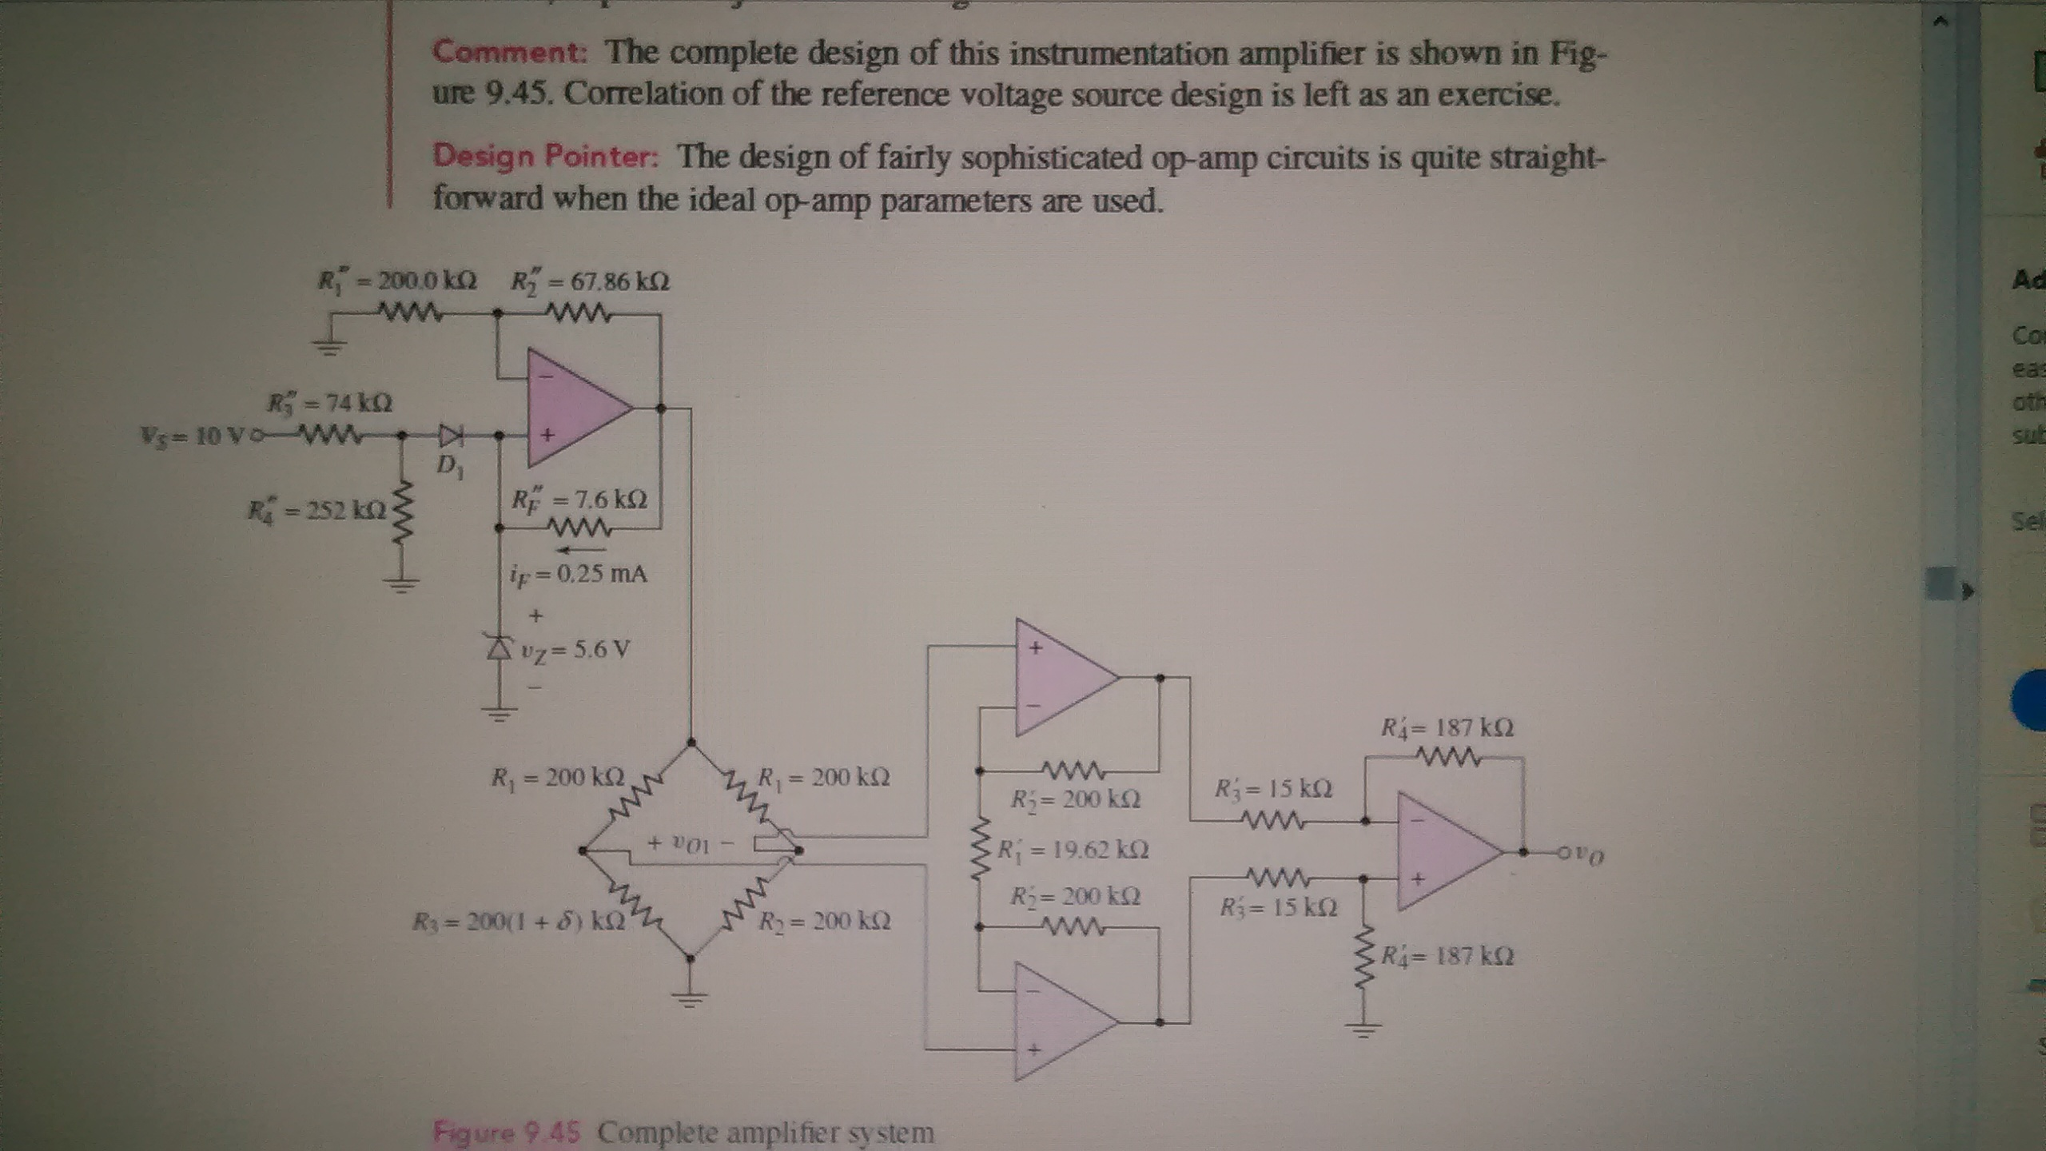 Neamen Solution Manual Transmission Diagram A543 In A Caravan Am I Crazy No Just To Electronic Circuit Analysis And Design 2e Pdf Array The Textbook Is Microelectronics Analysi Chegg Com Rh